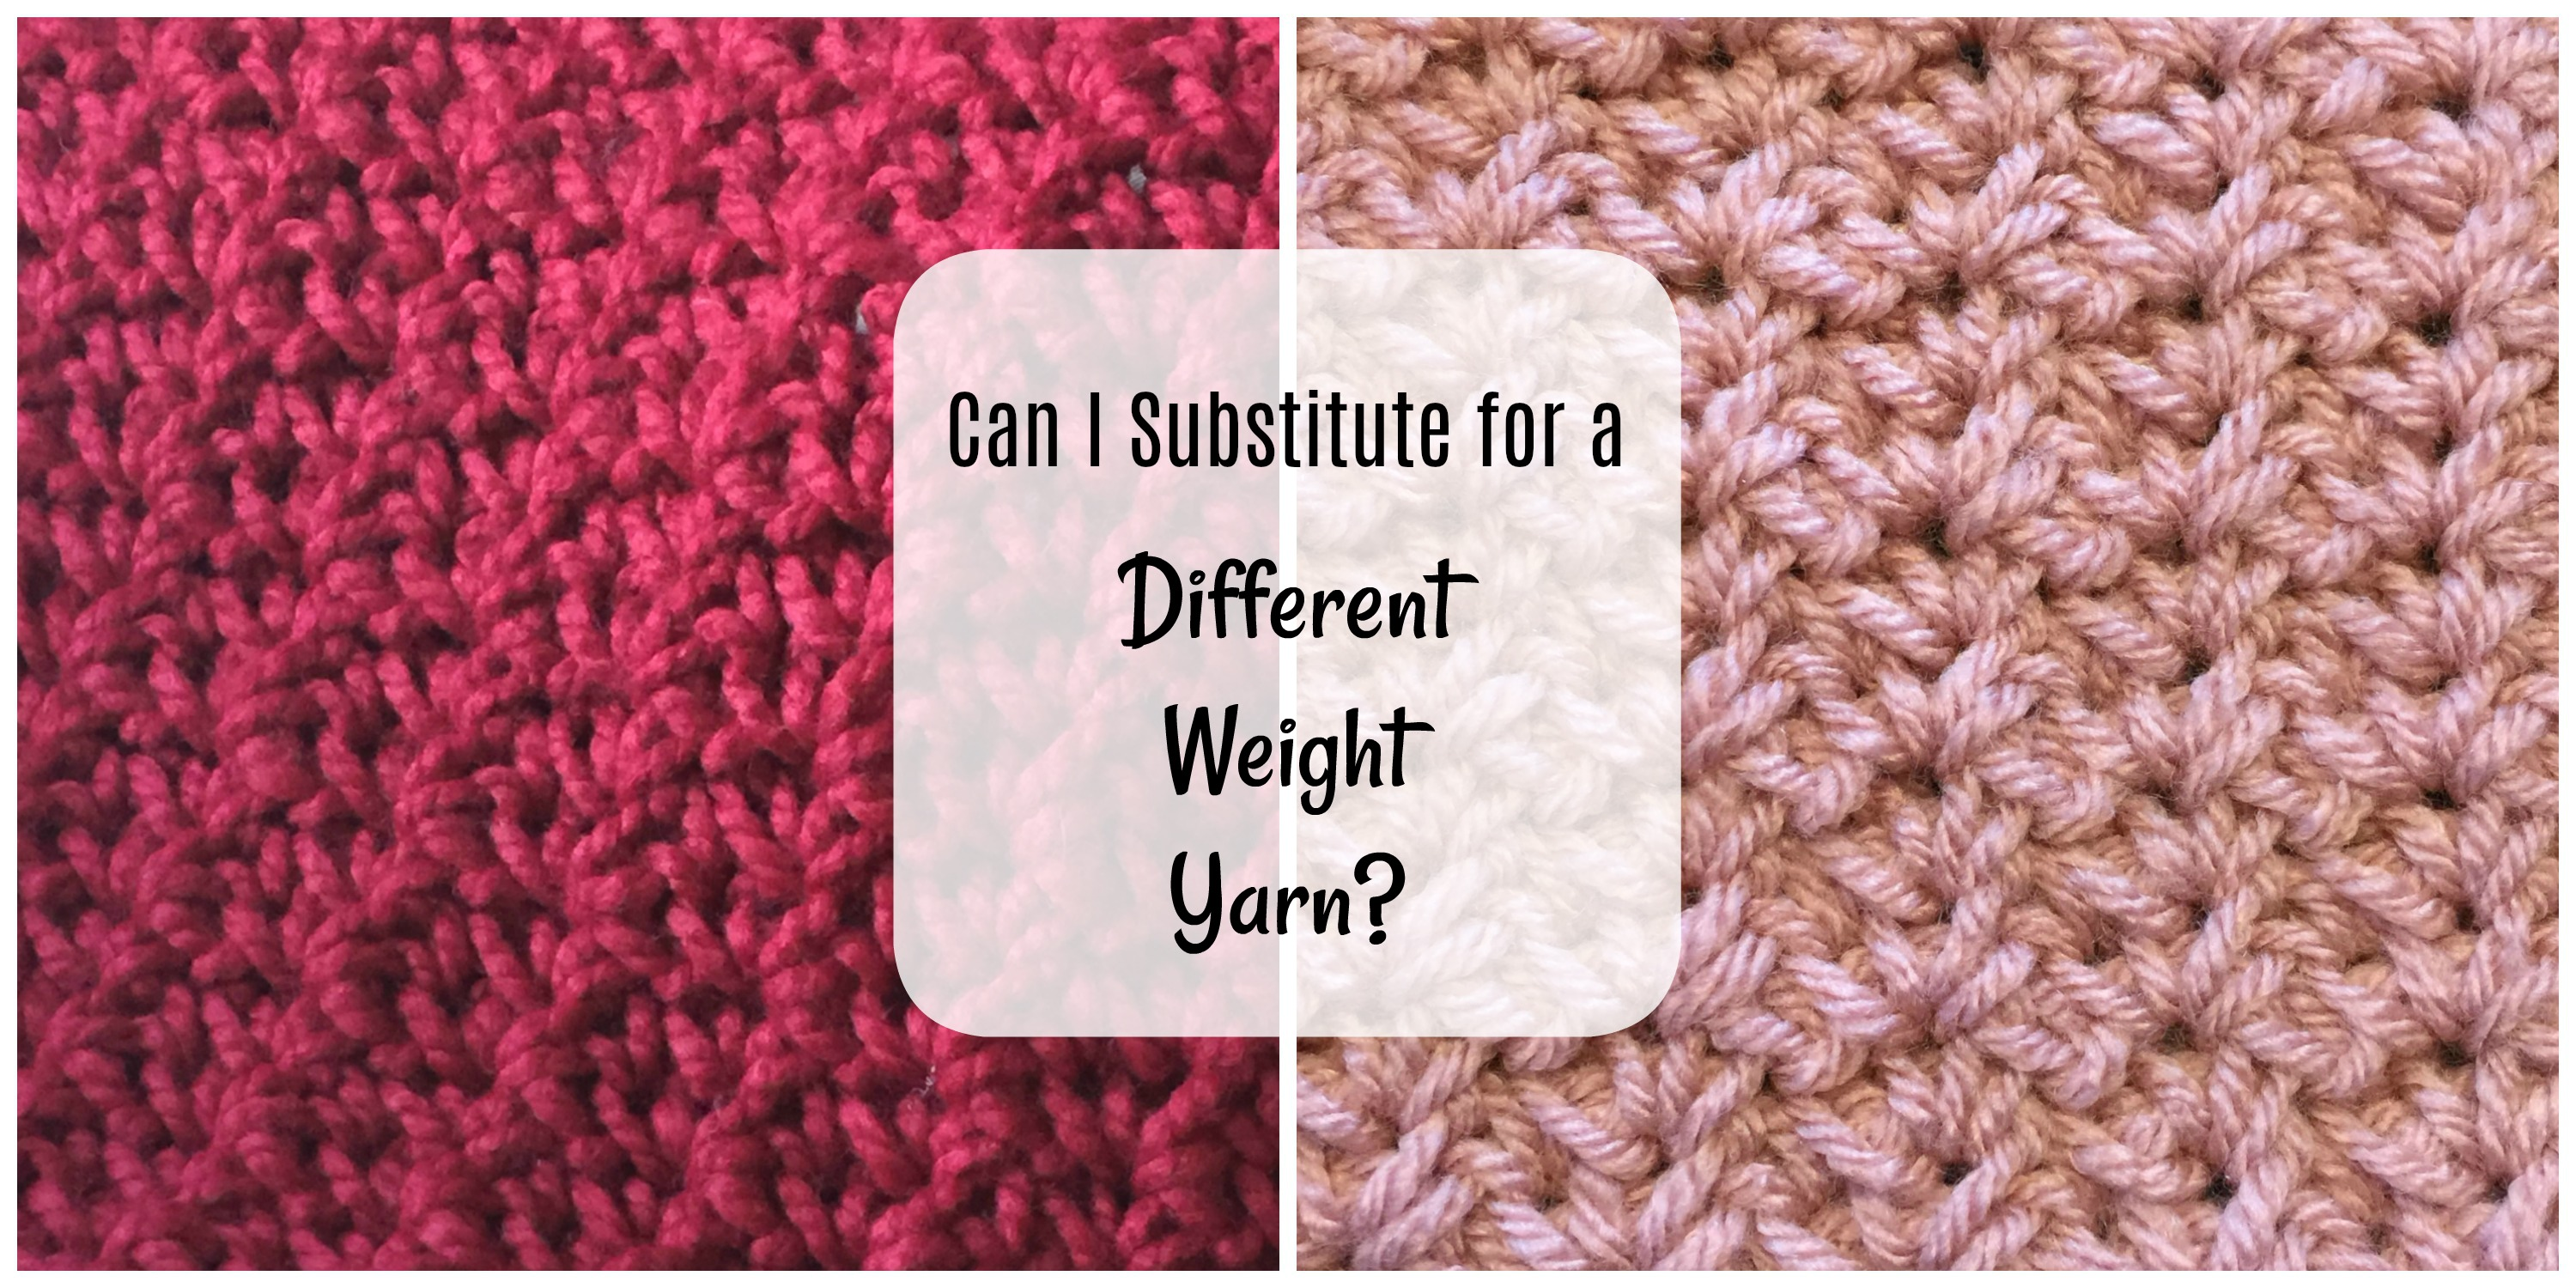 Can I Use a Different Weight Yarn for My Project? - Ambassador Crochet